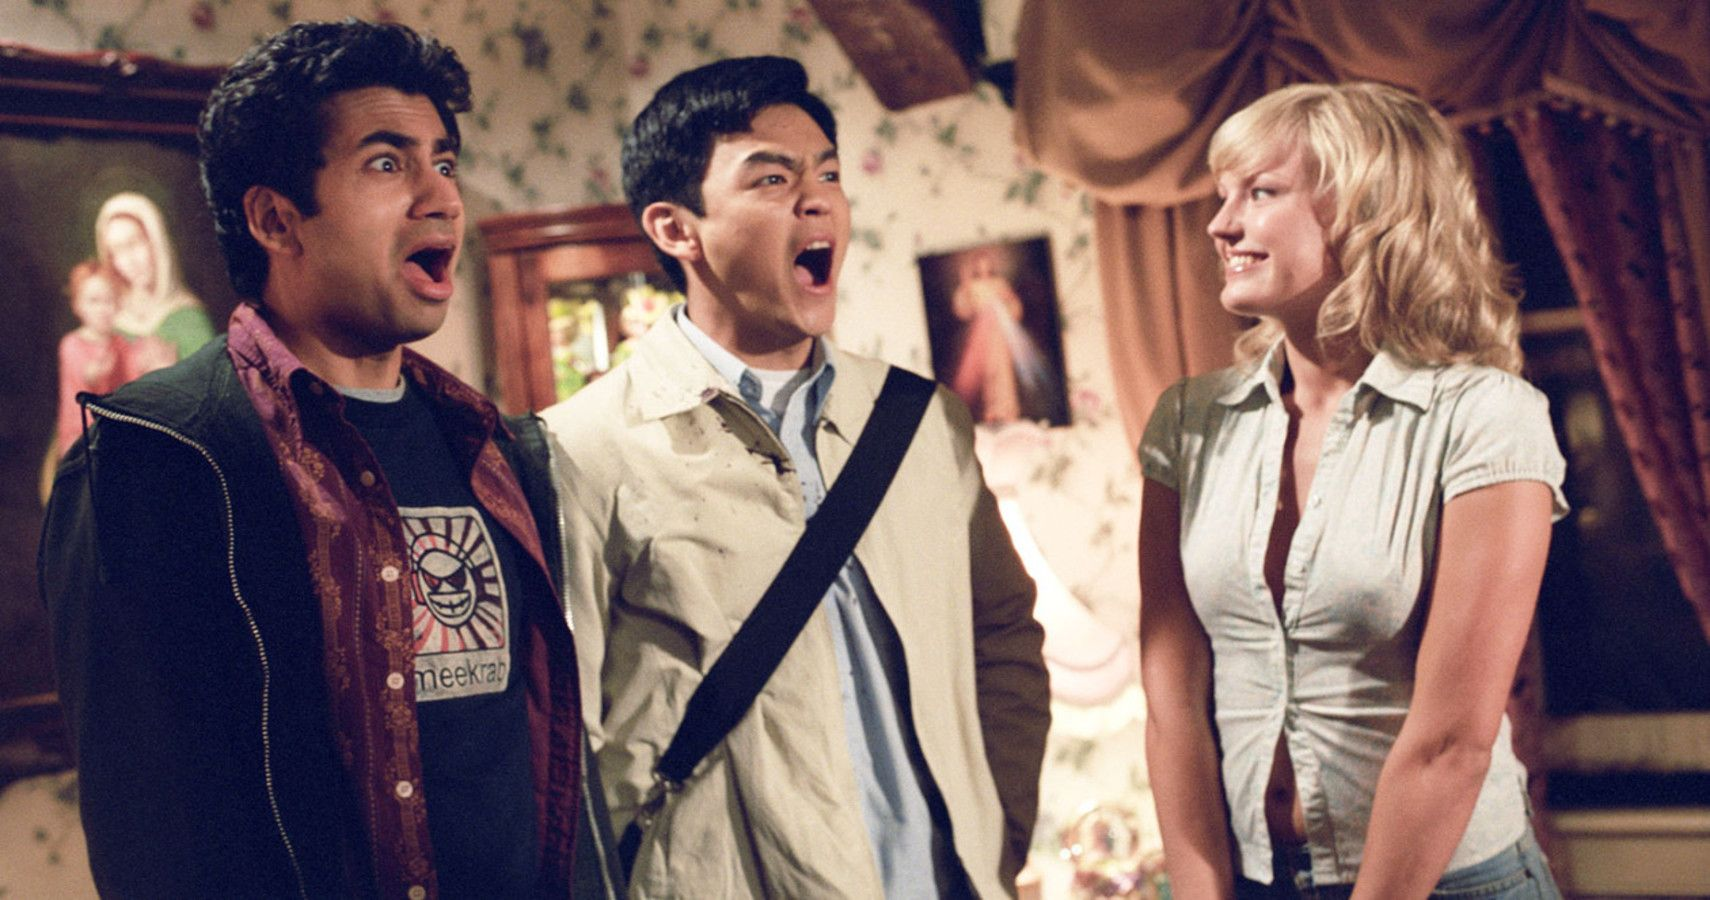 10 Things You Didn't Know About The Harold And Kumar Movies